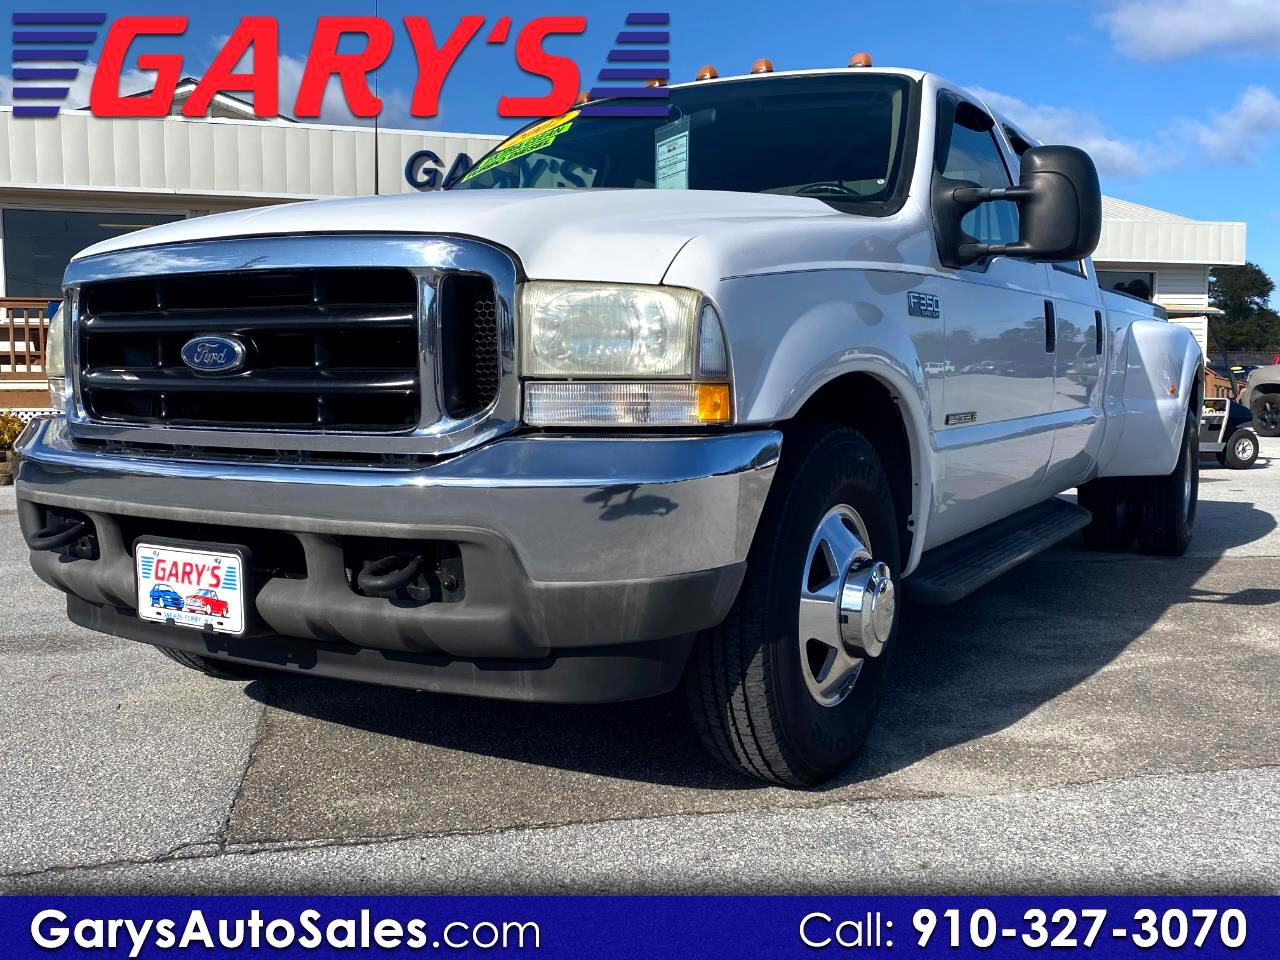 Ford F-350 SD XLT Crew Cab Long Bed 2WD DRW 2002